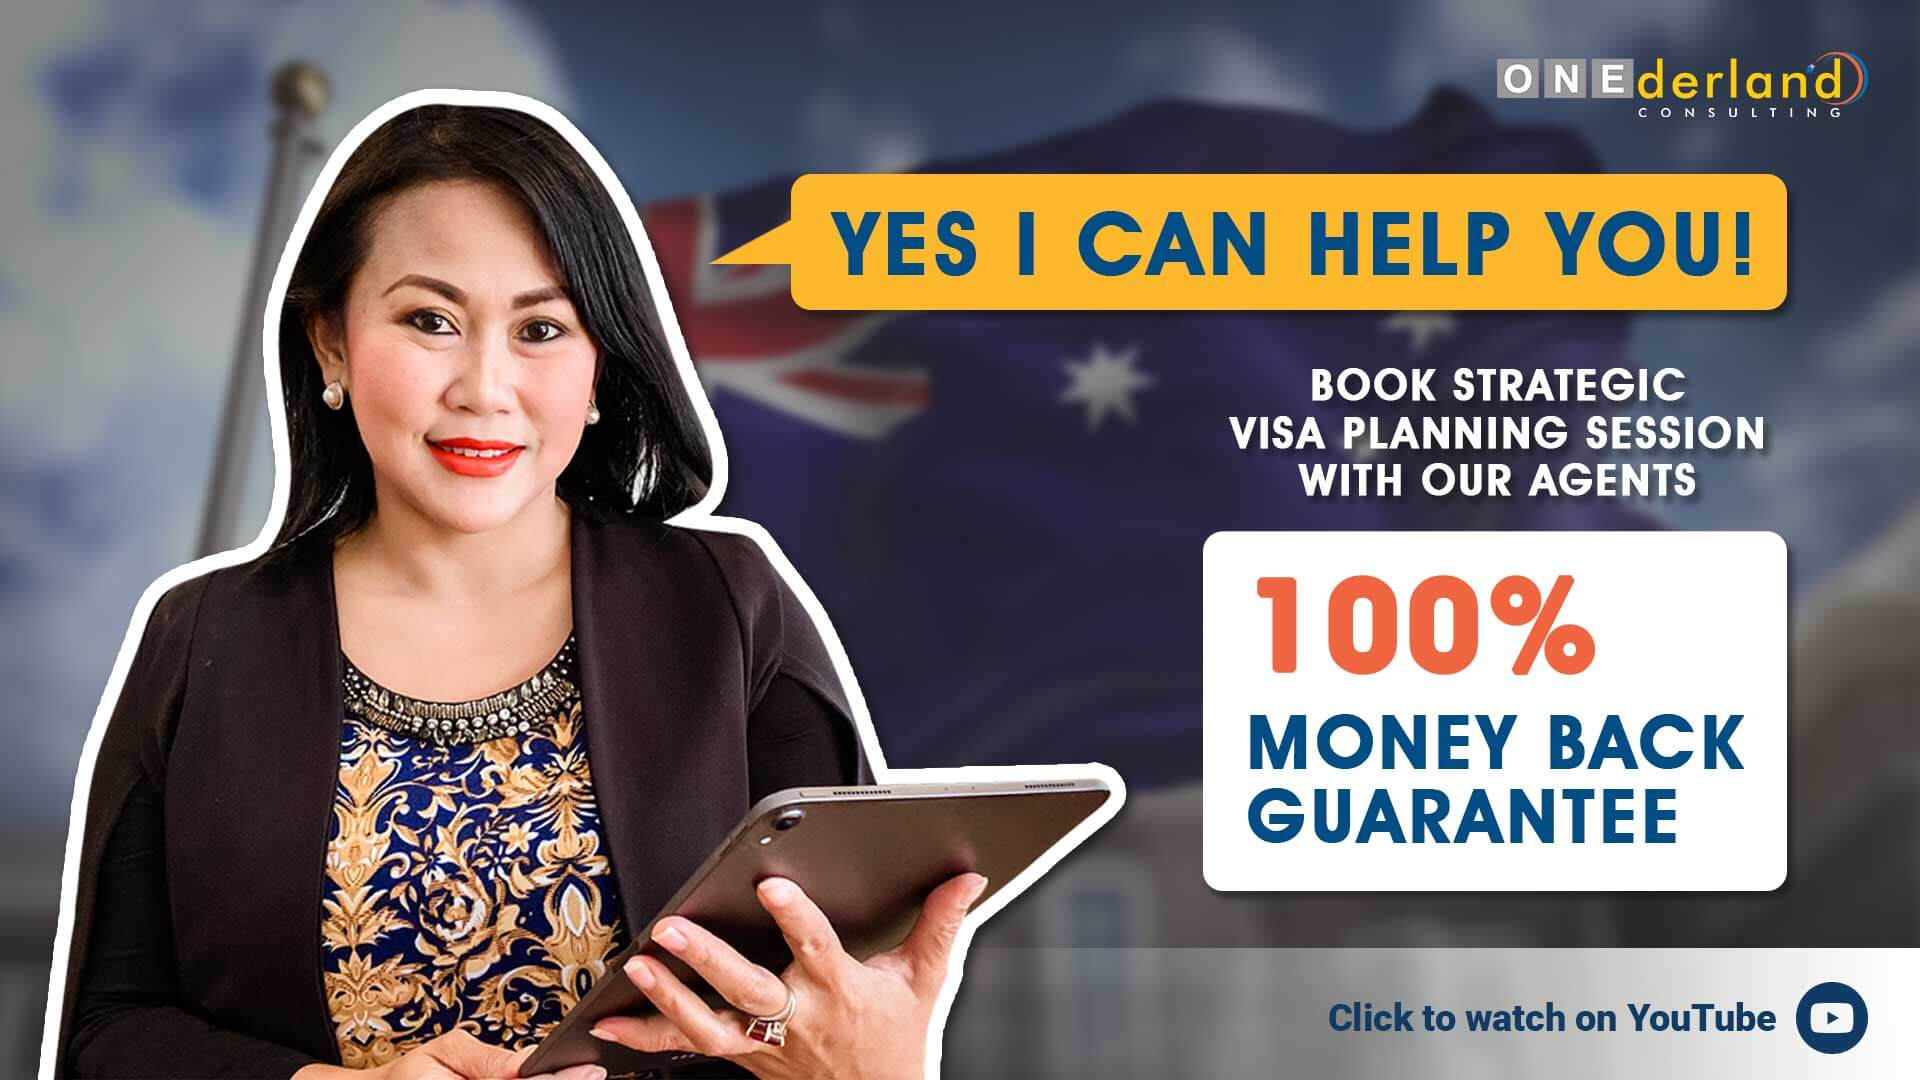 ONE derland Consulting 100% Back Guarantee-2